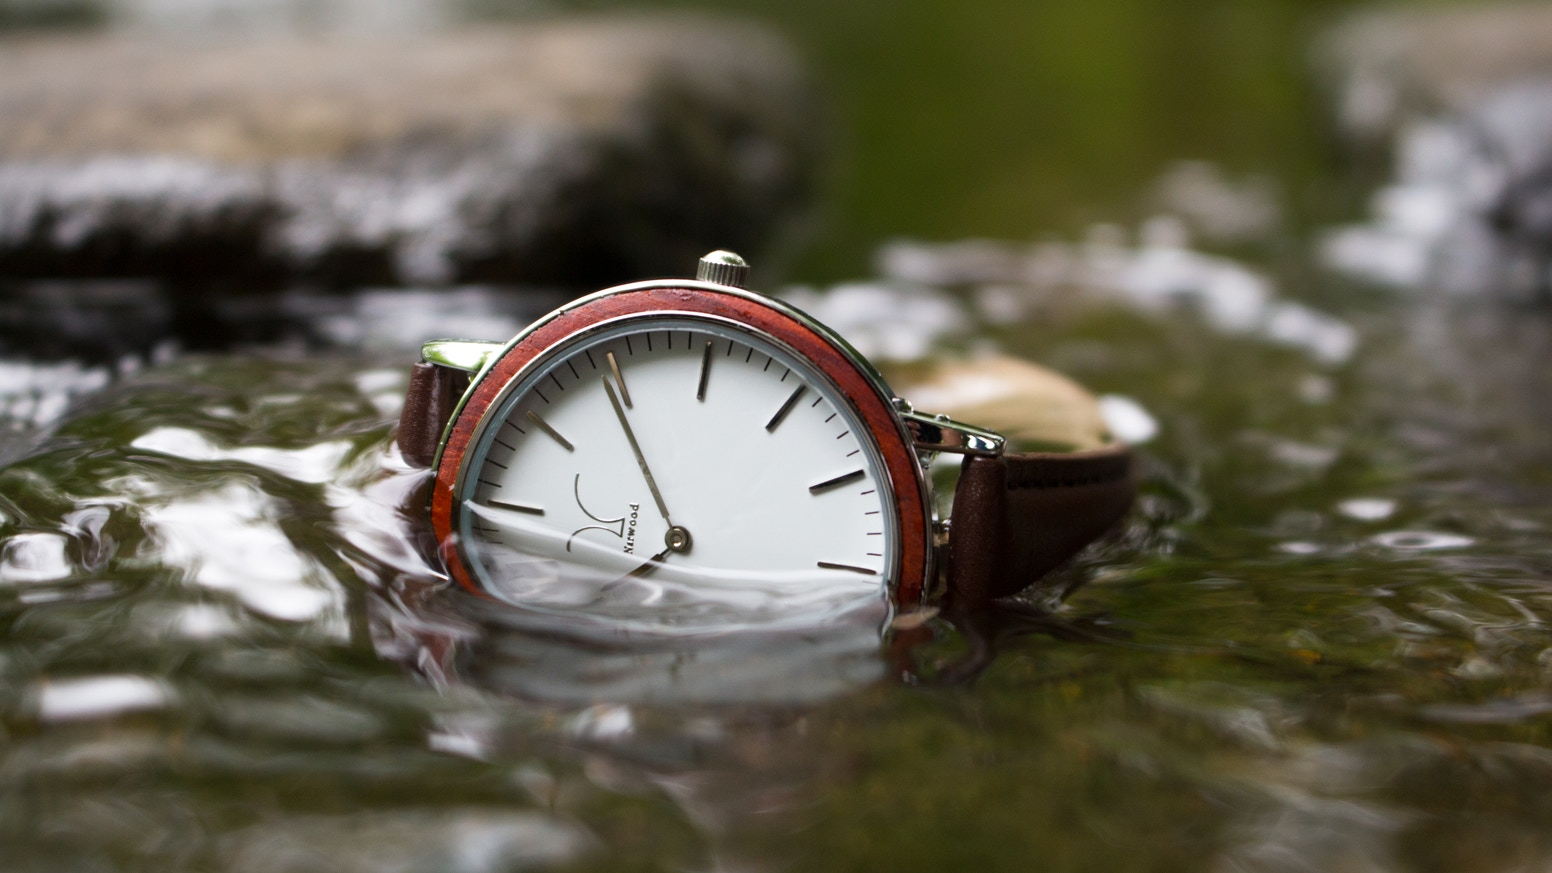 Elegantly crafted watches infused with natural wooden extracts. A watch that perfectly suits any occasion.